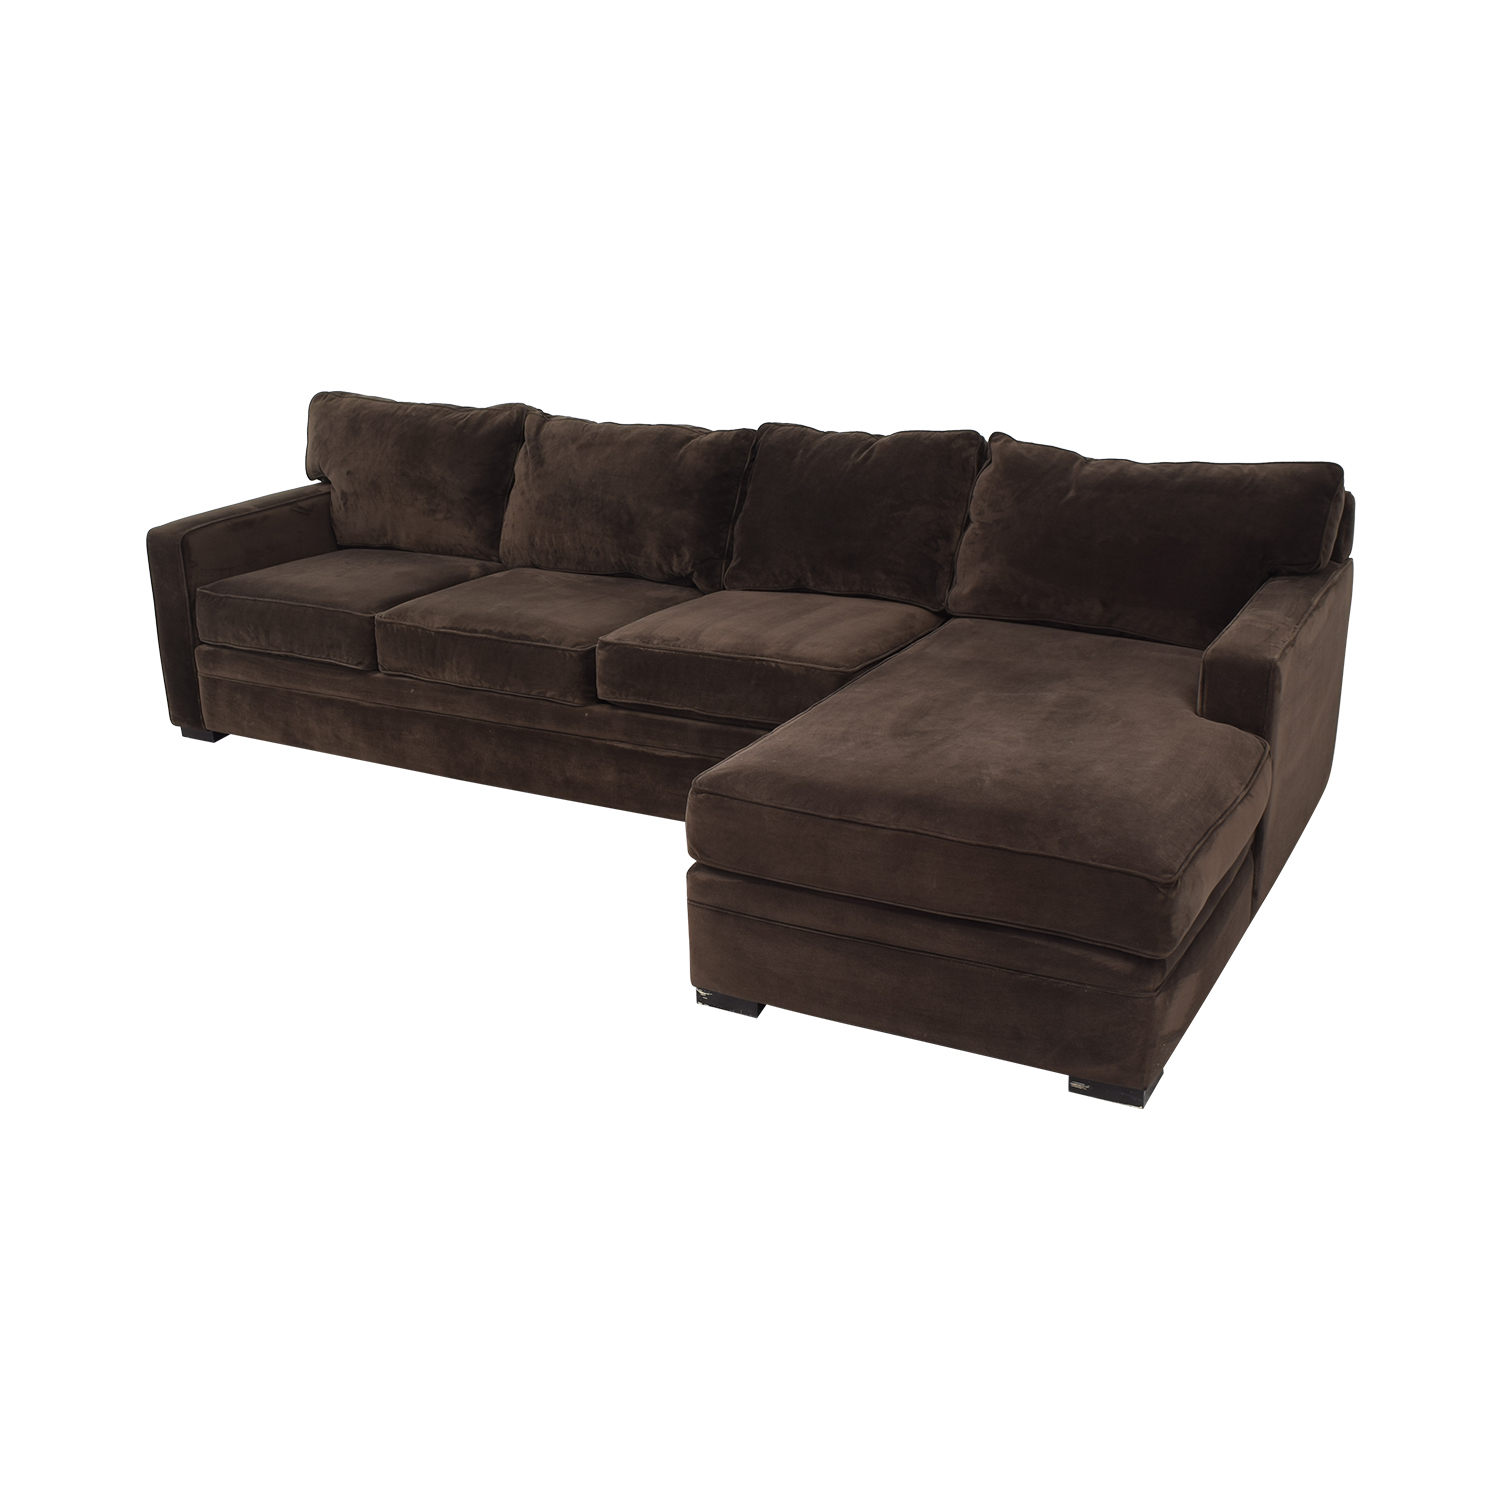 Star Furniture Star Furniture Juno Raf Sectional Sofa with Chaise second hand